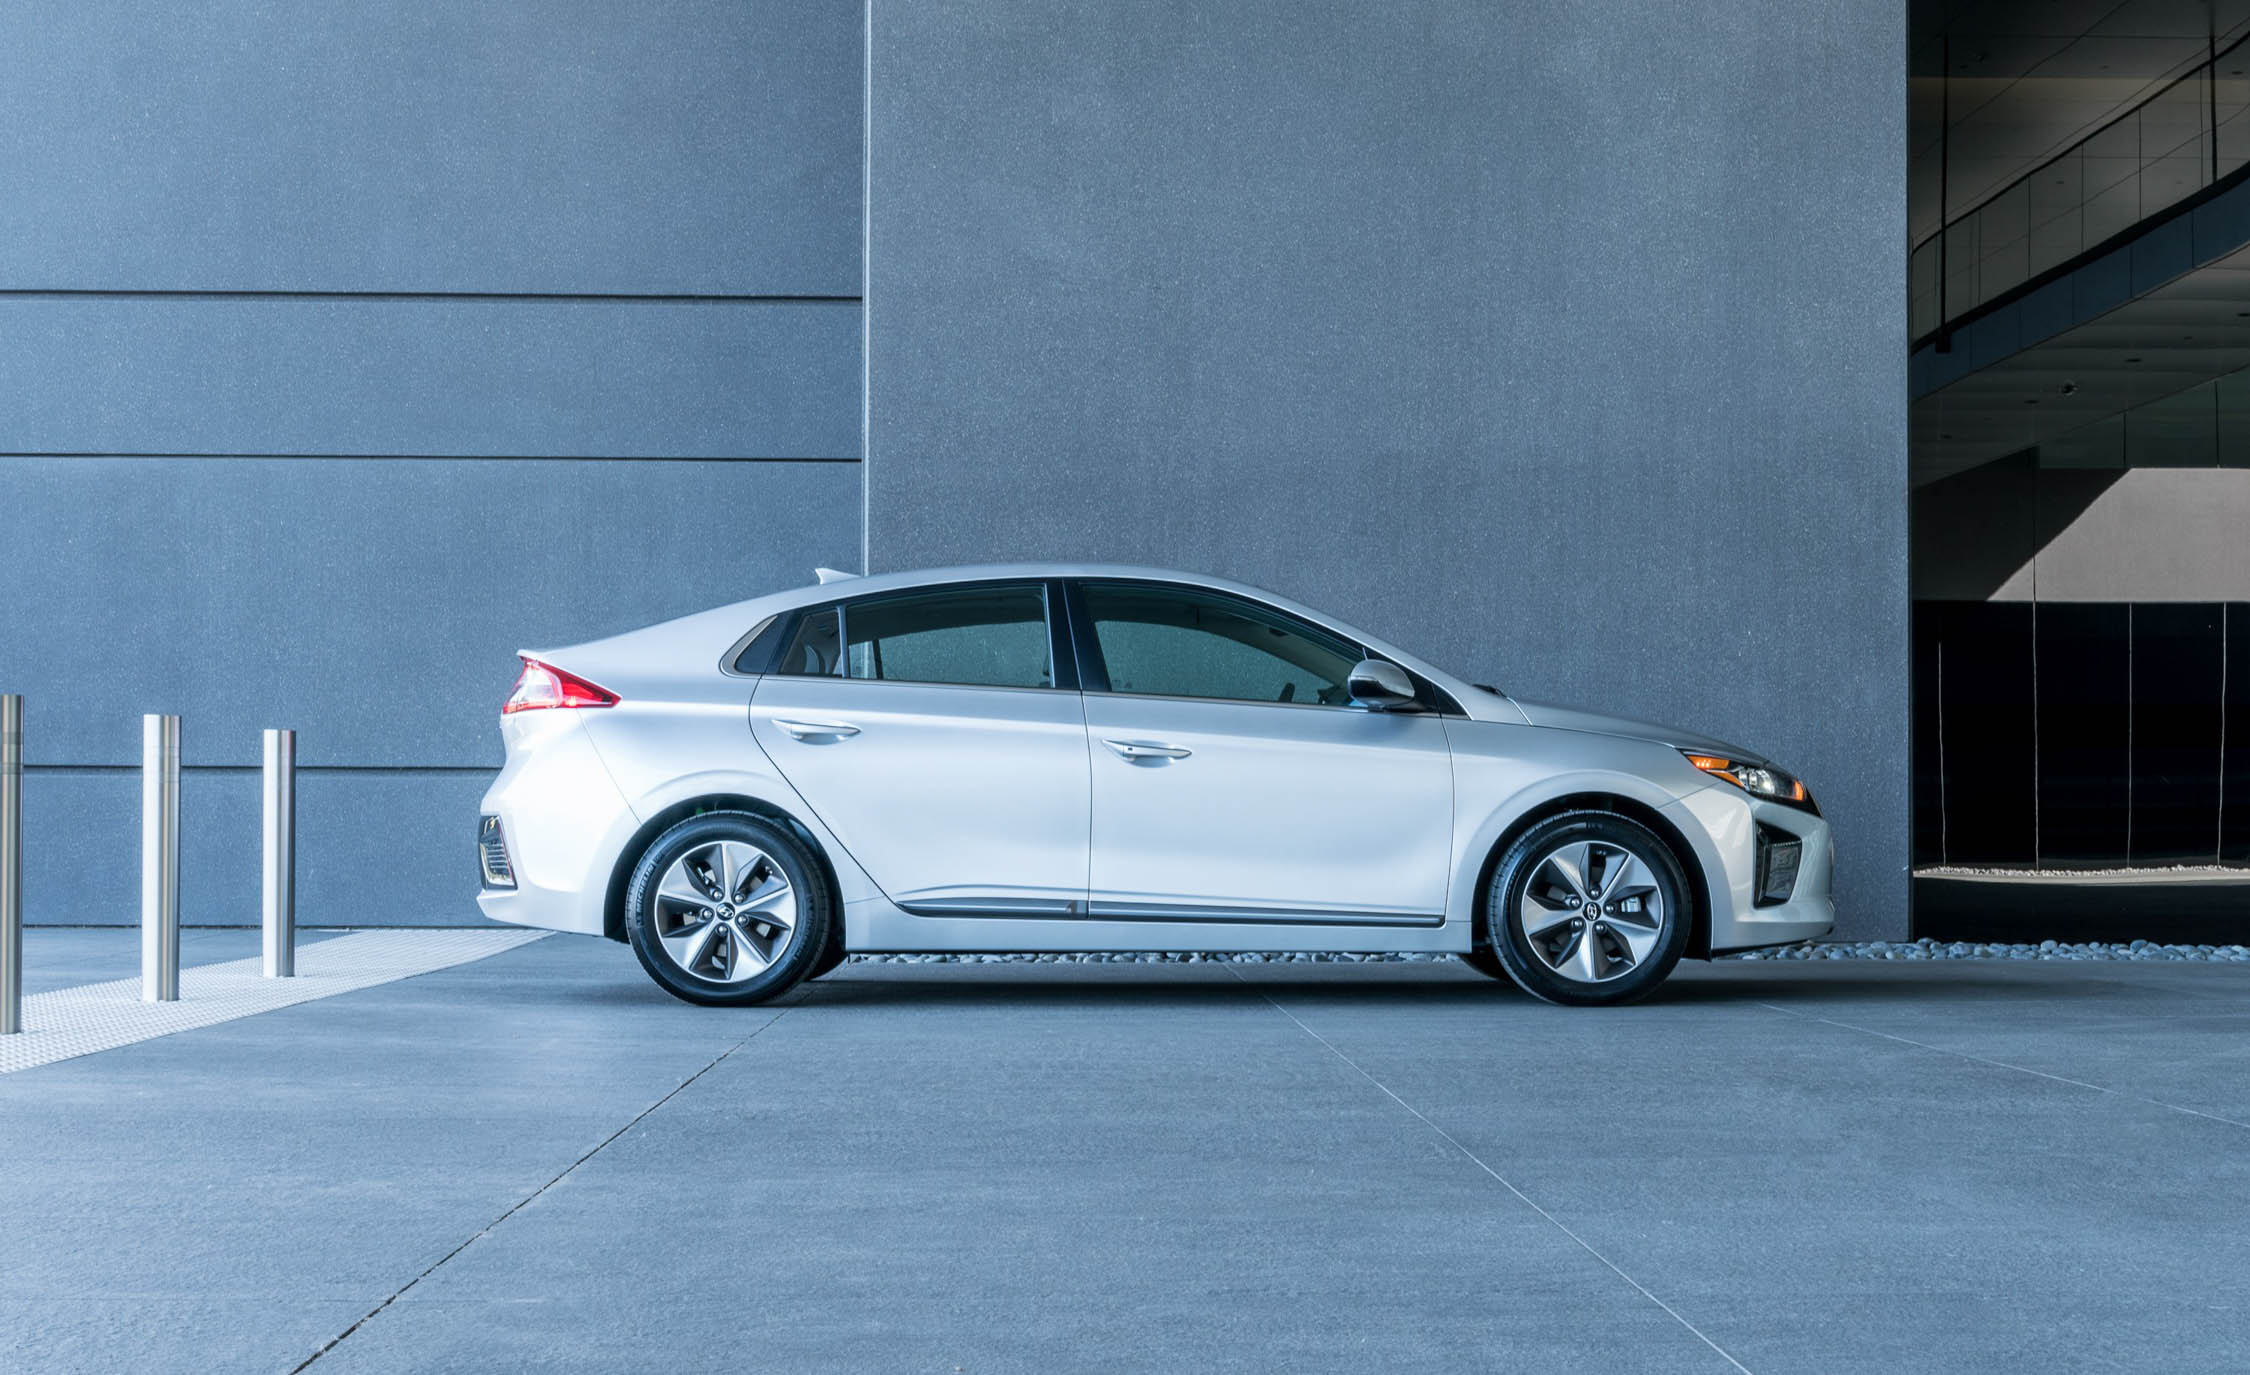 2017 Hyundai Ioniq Electric Exterior Side (Photo 6 of 67)